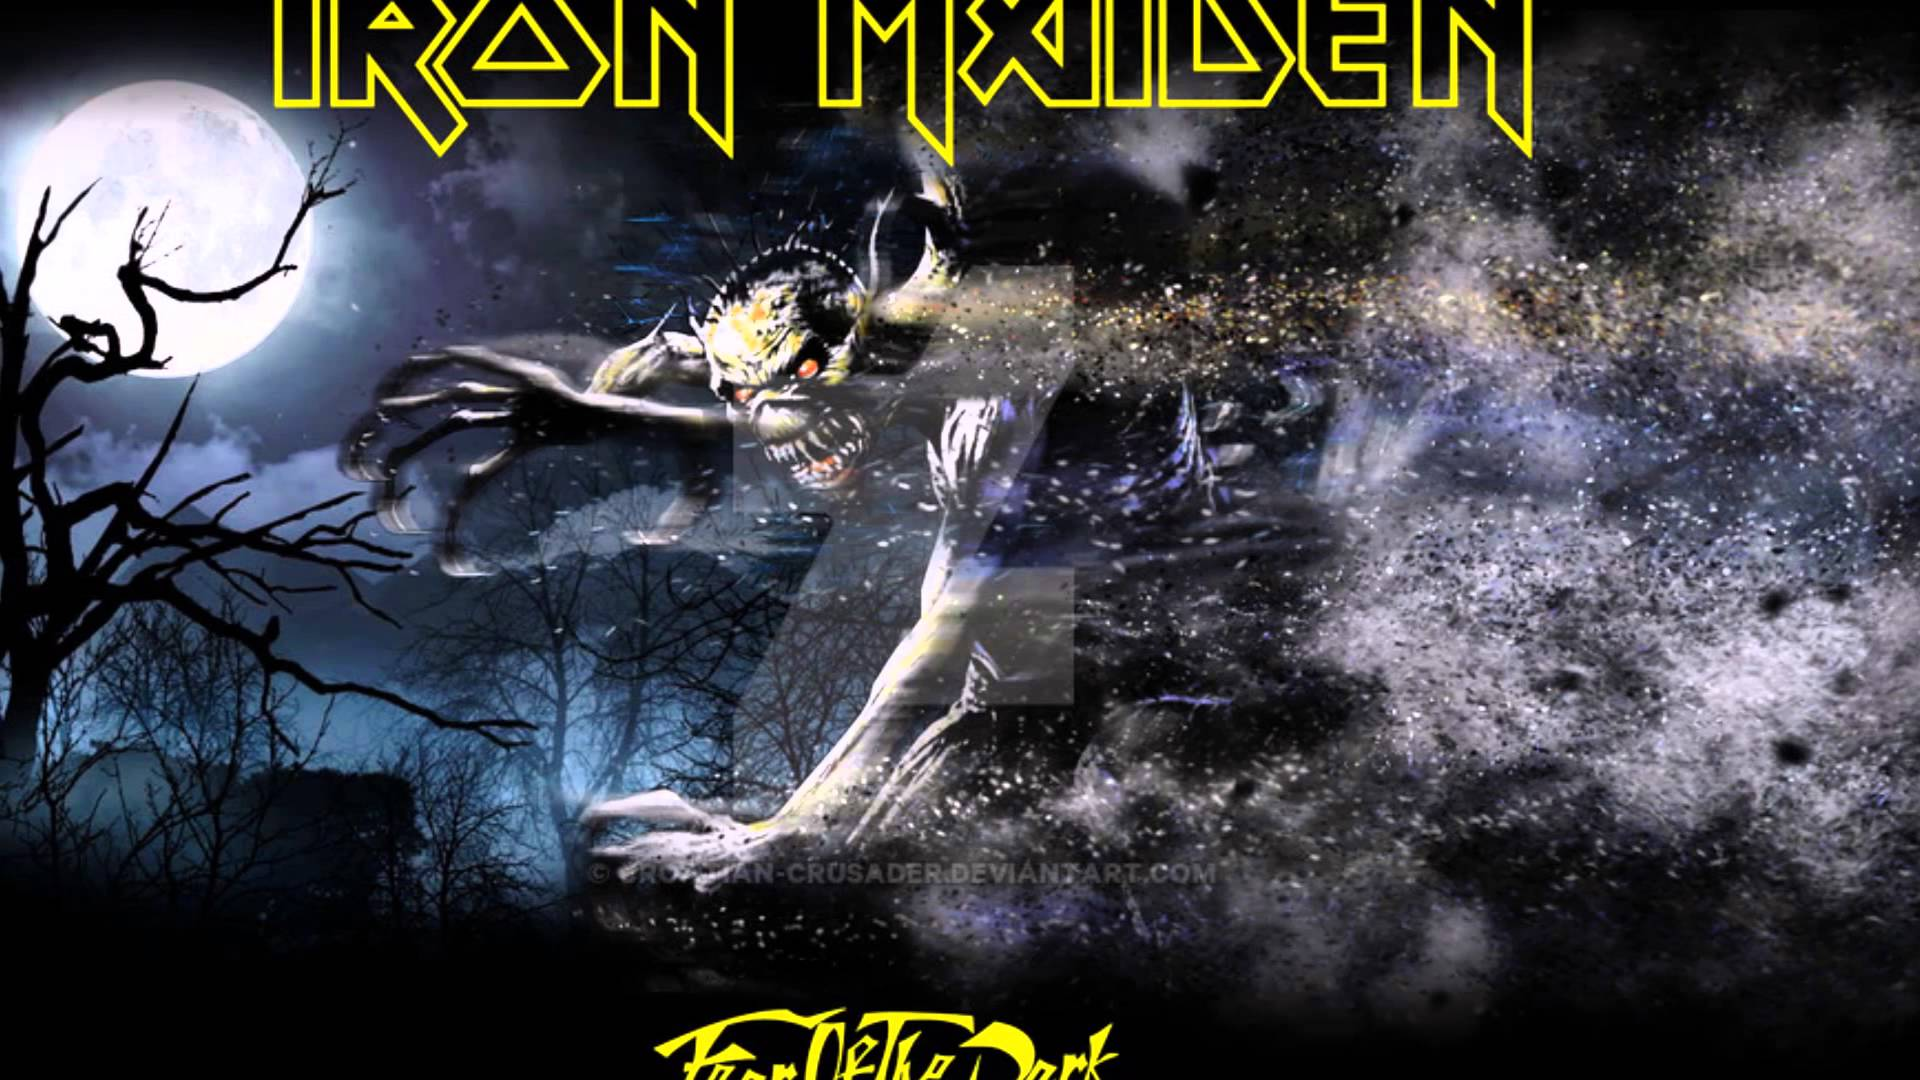 Iron Maiden Fear Of The Dark Wallpapers Photo On Wallpaper